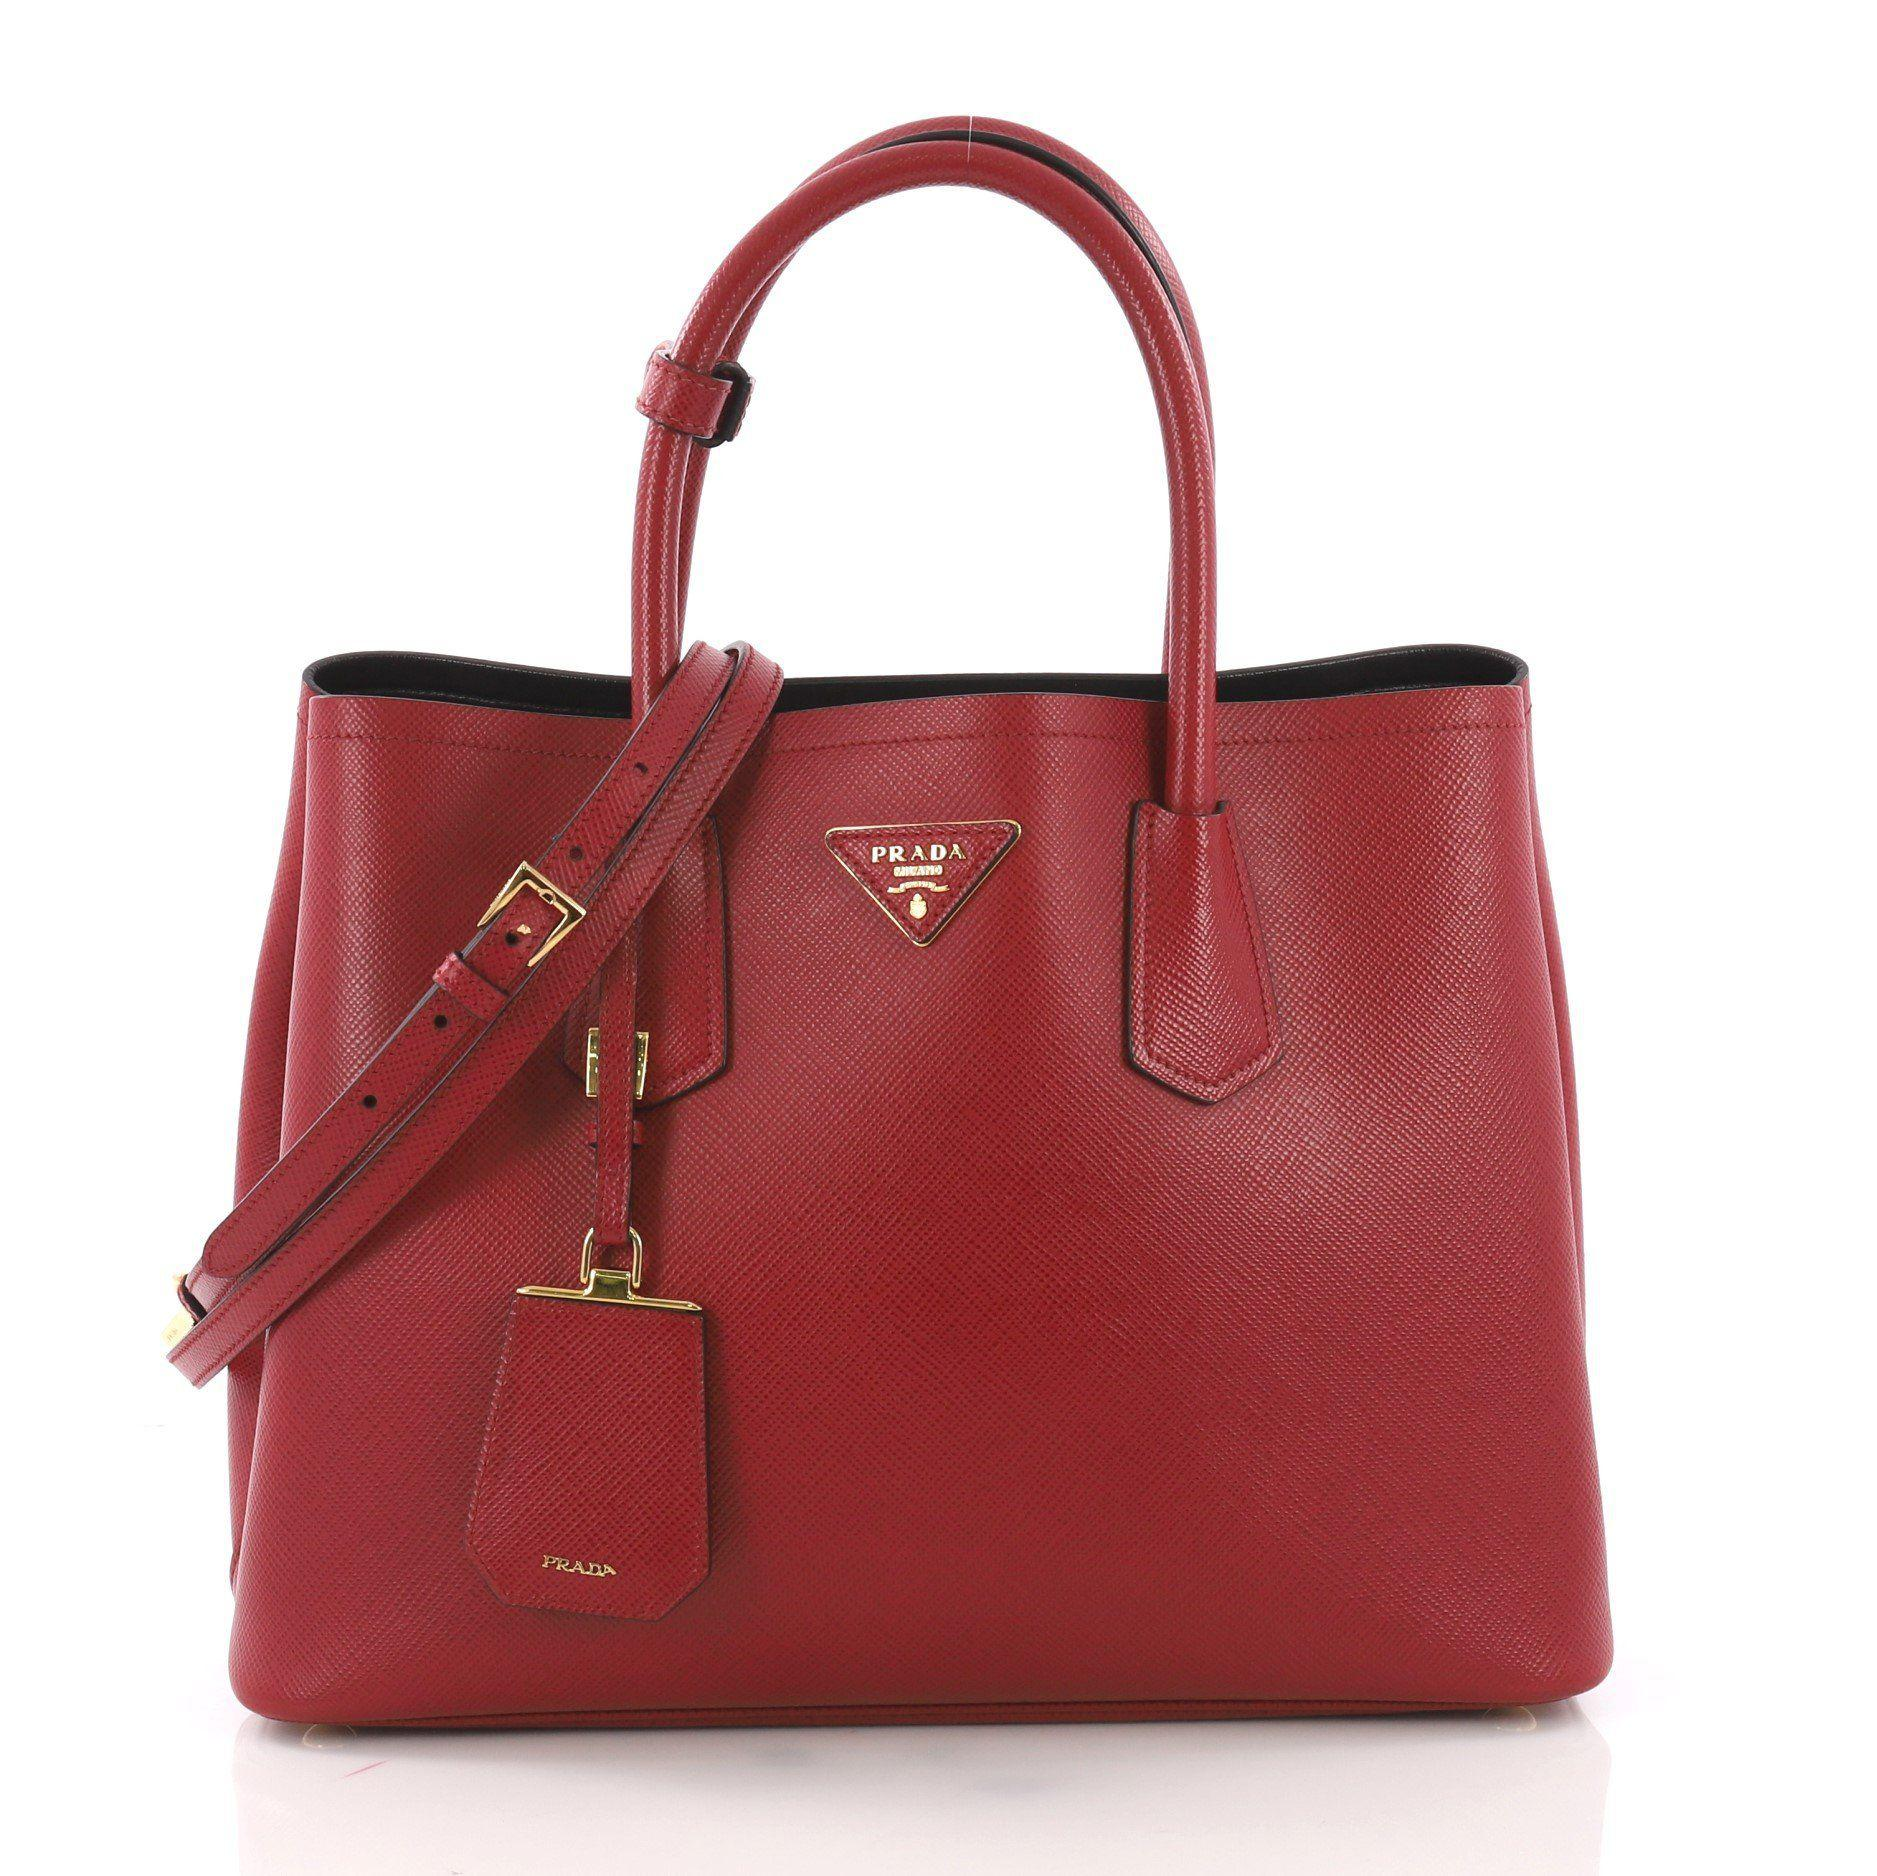 2956640b180 Prada - Red Pre Owned Cuir Double Tote Saffiano Leather Small - Lyst. View  fullscreen